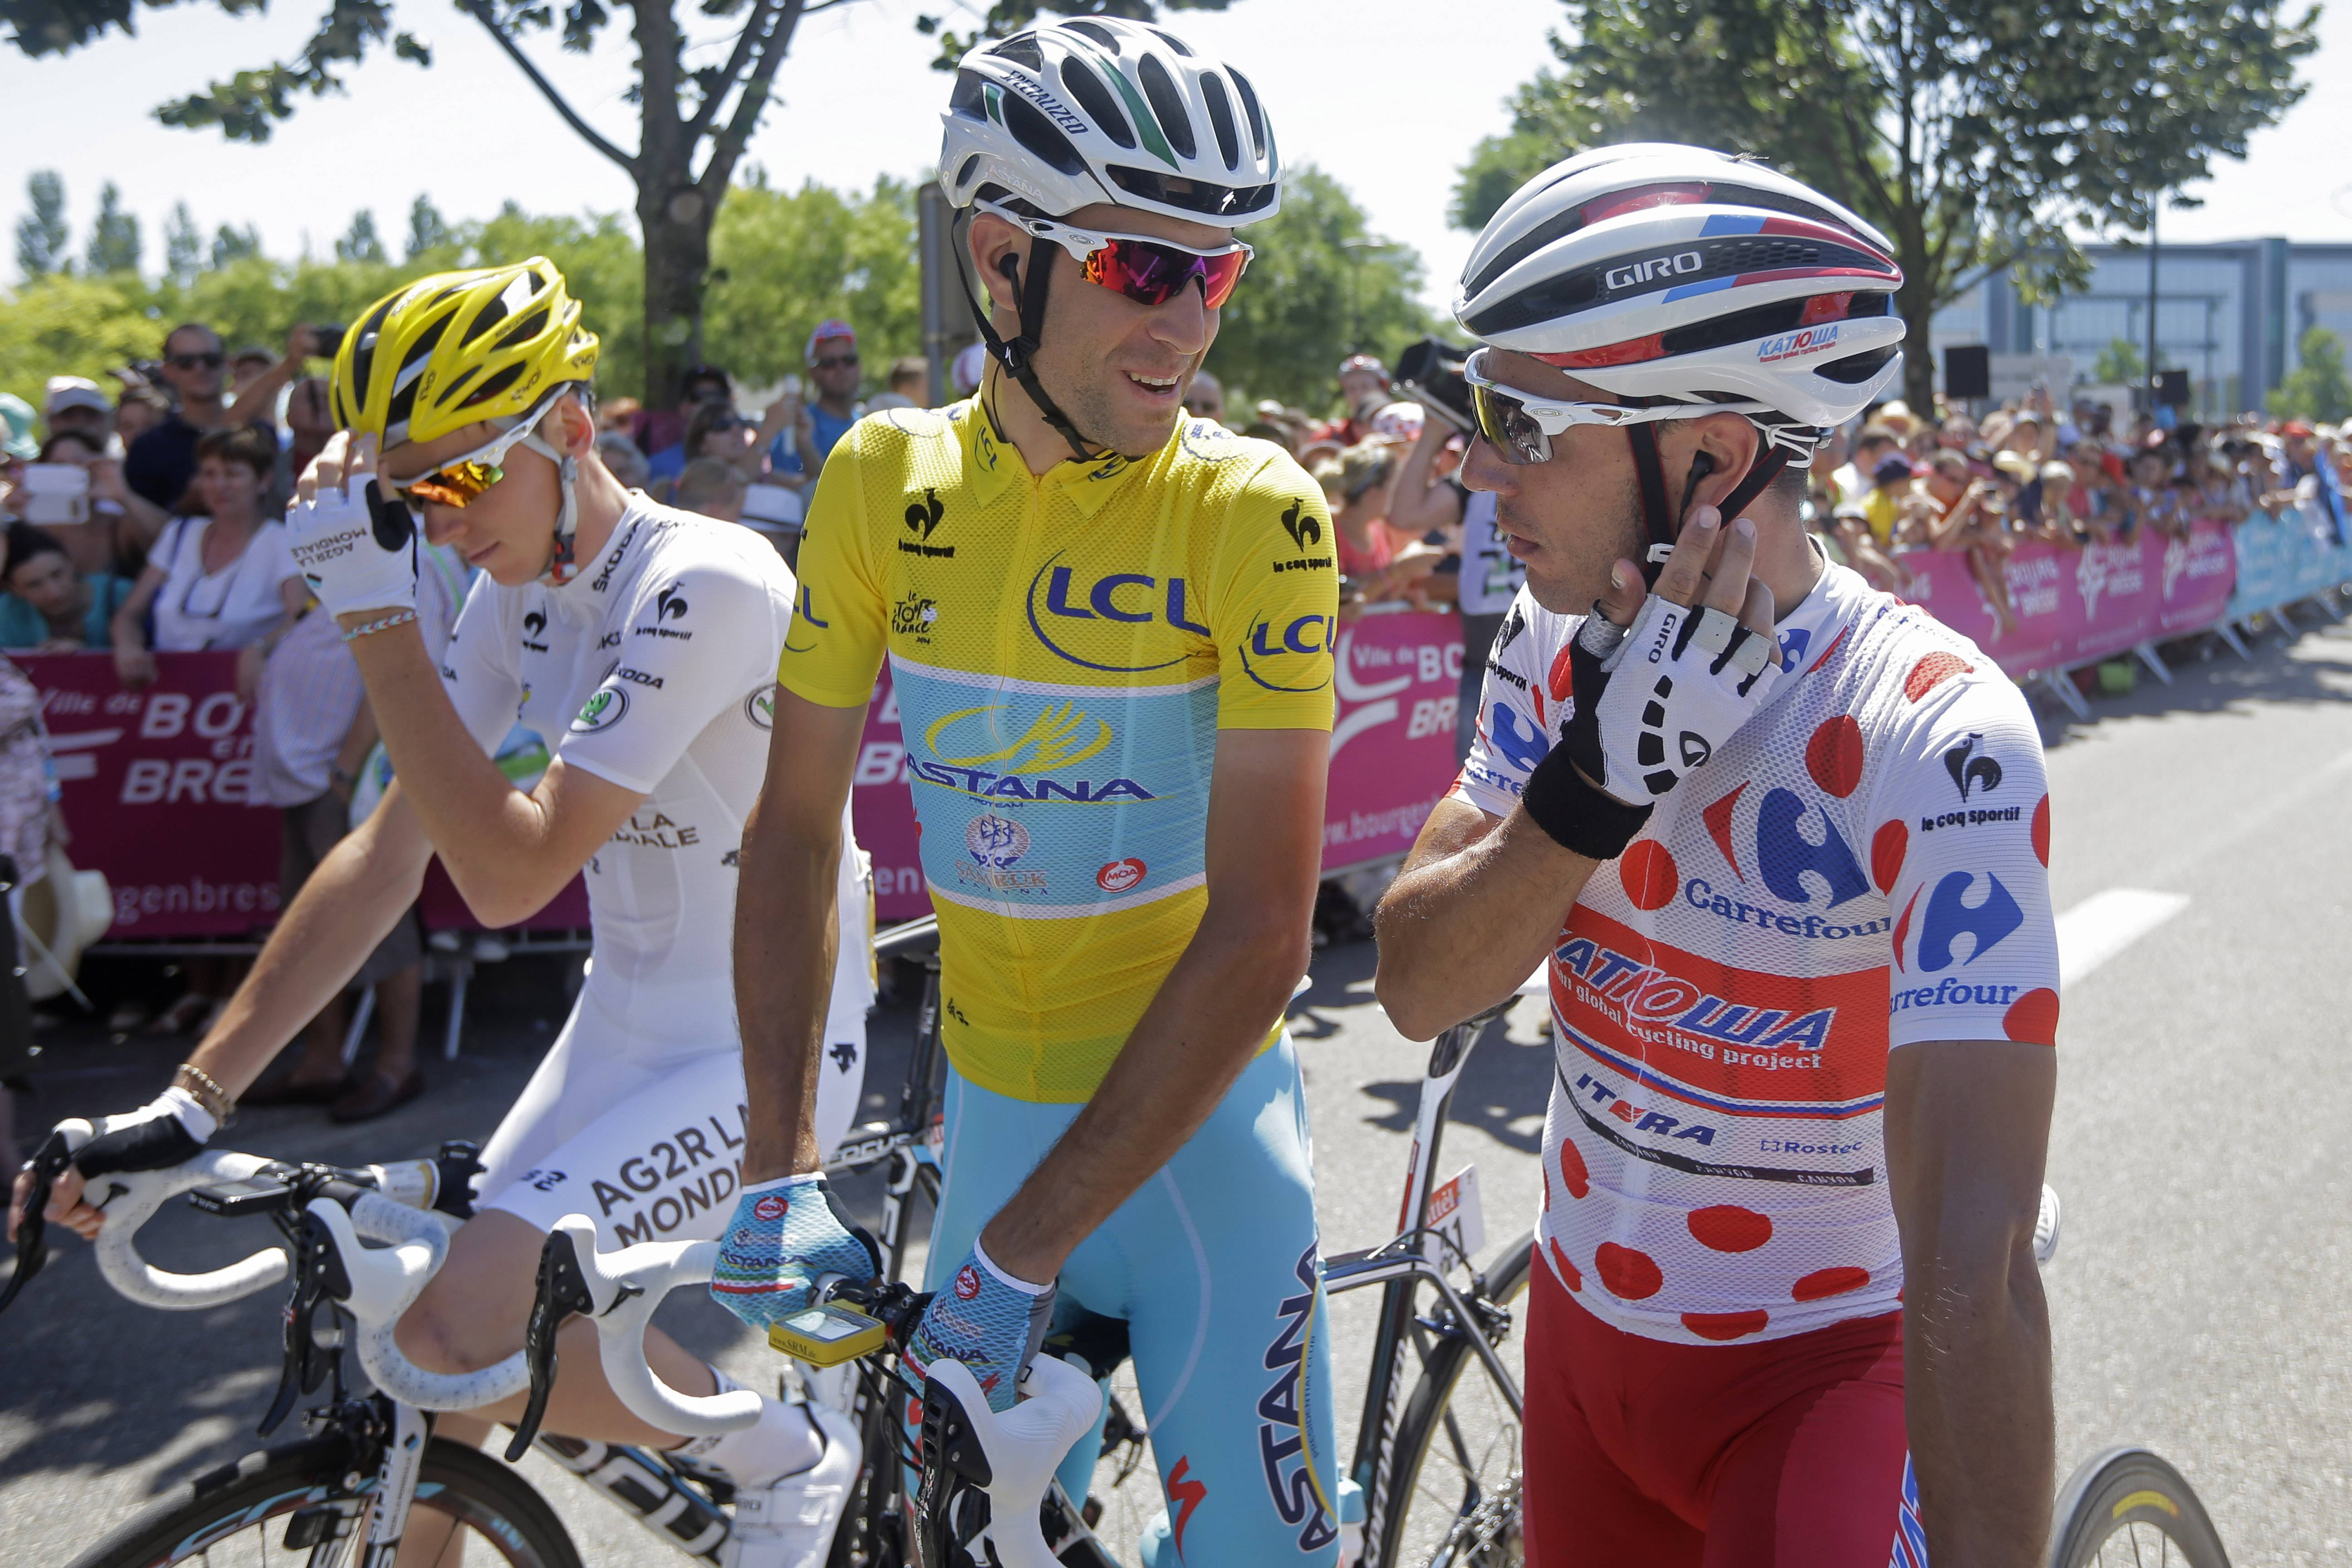 Italy's Vincenzo Nibali, wearing the overall leader's yellow jersey, talks to Spain's Joaquim Rodriguez, wearing the best climber's dotted jersey, as they wait Thursday with France's Romain Bardet, wearing the best young rider's white jersey, for the start of the twelfth stage of the Tour de France.